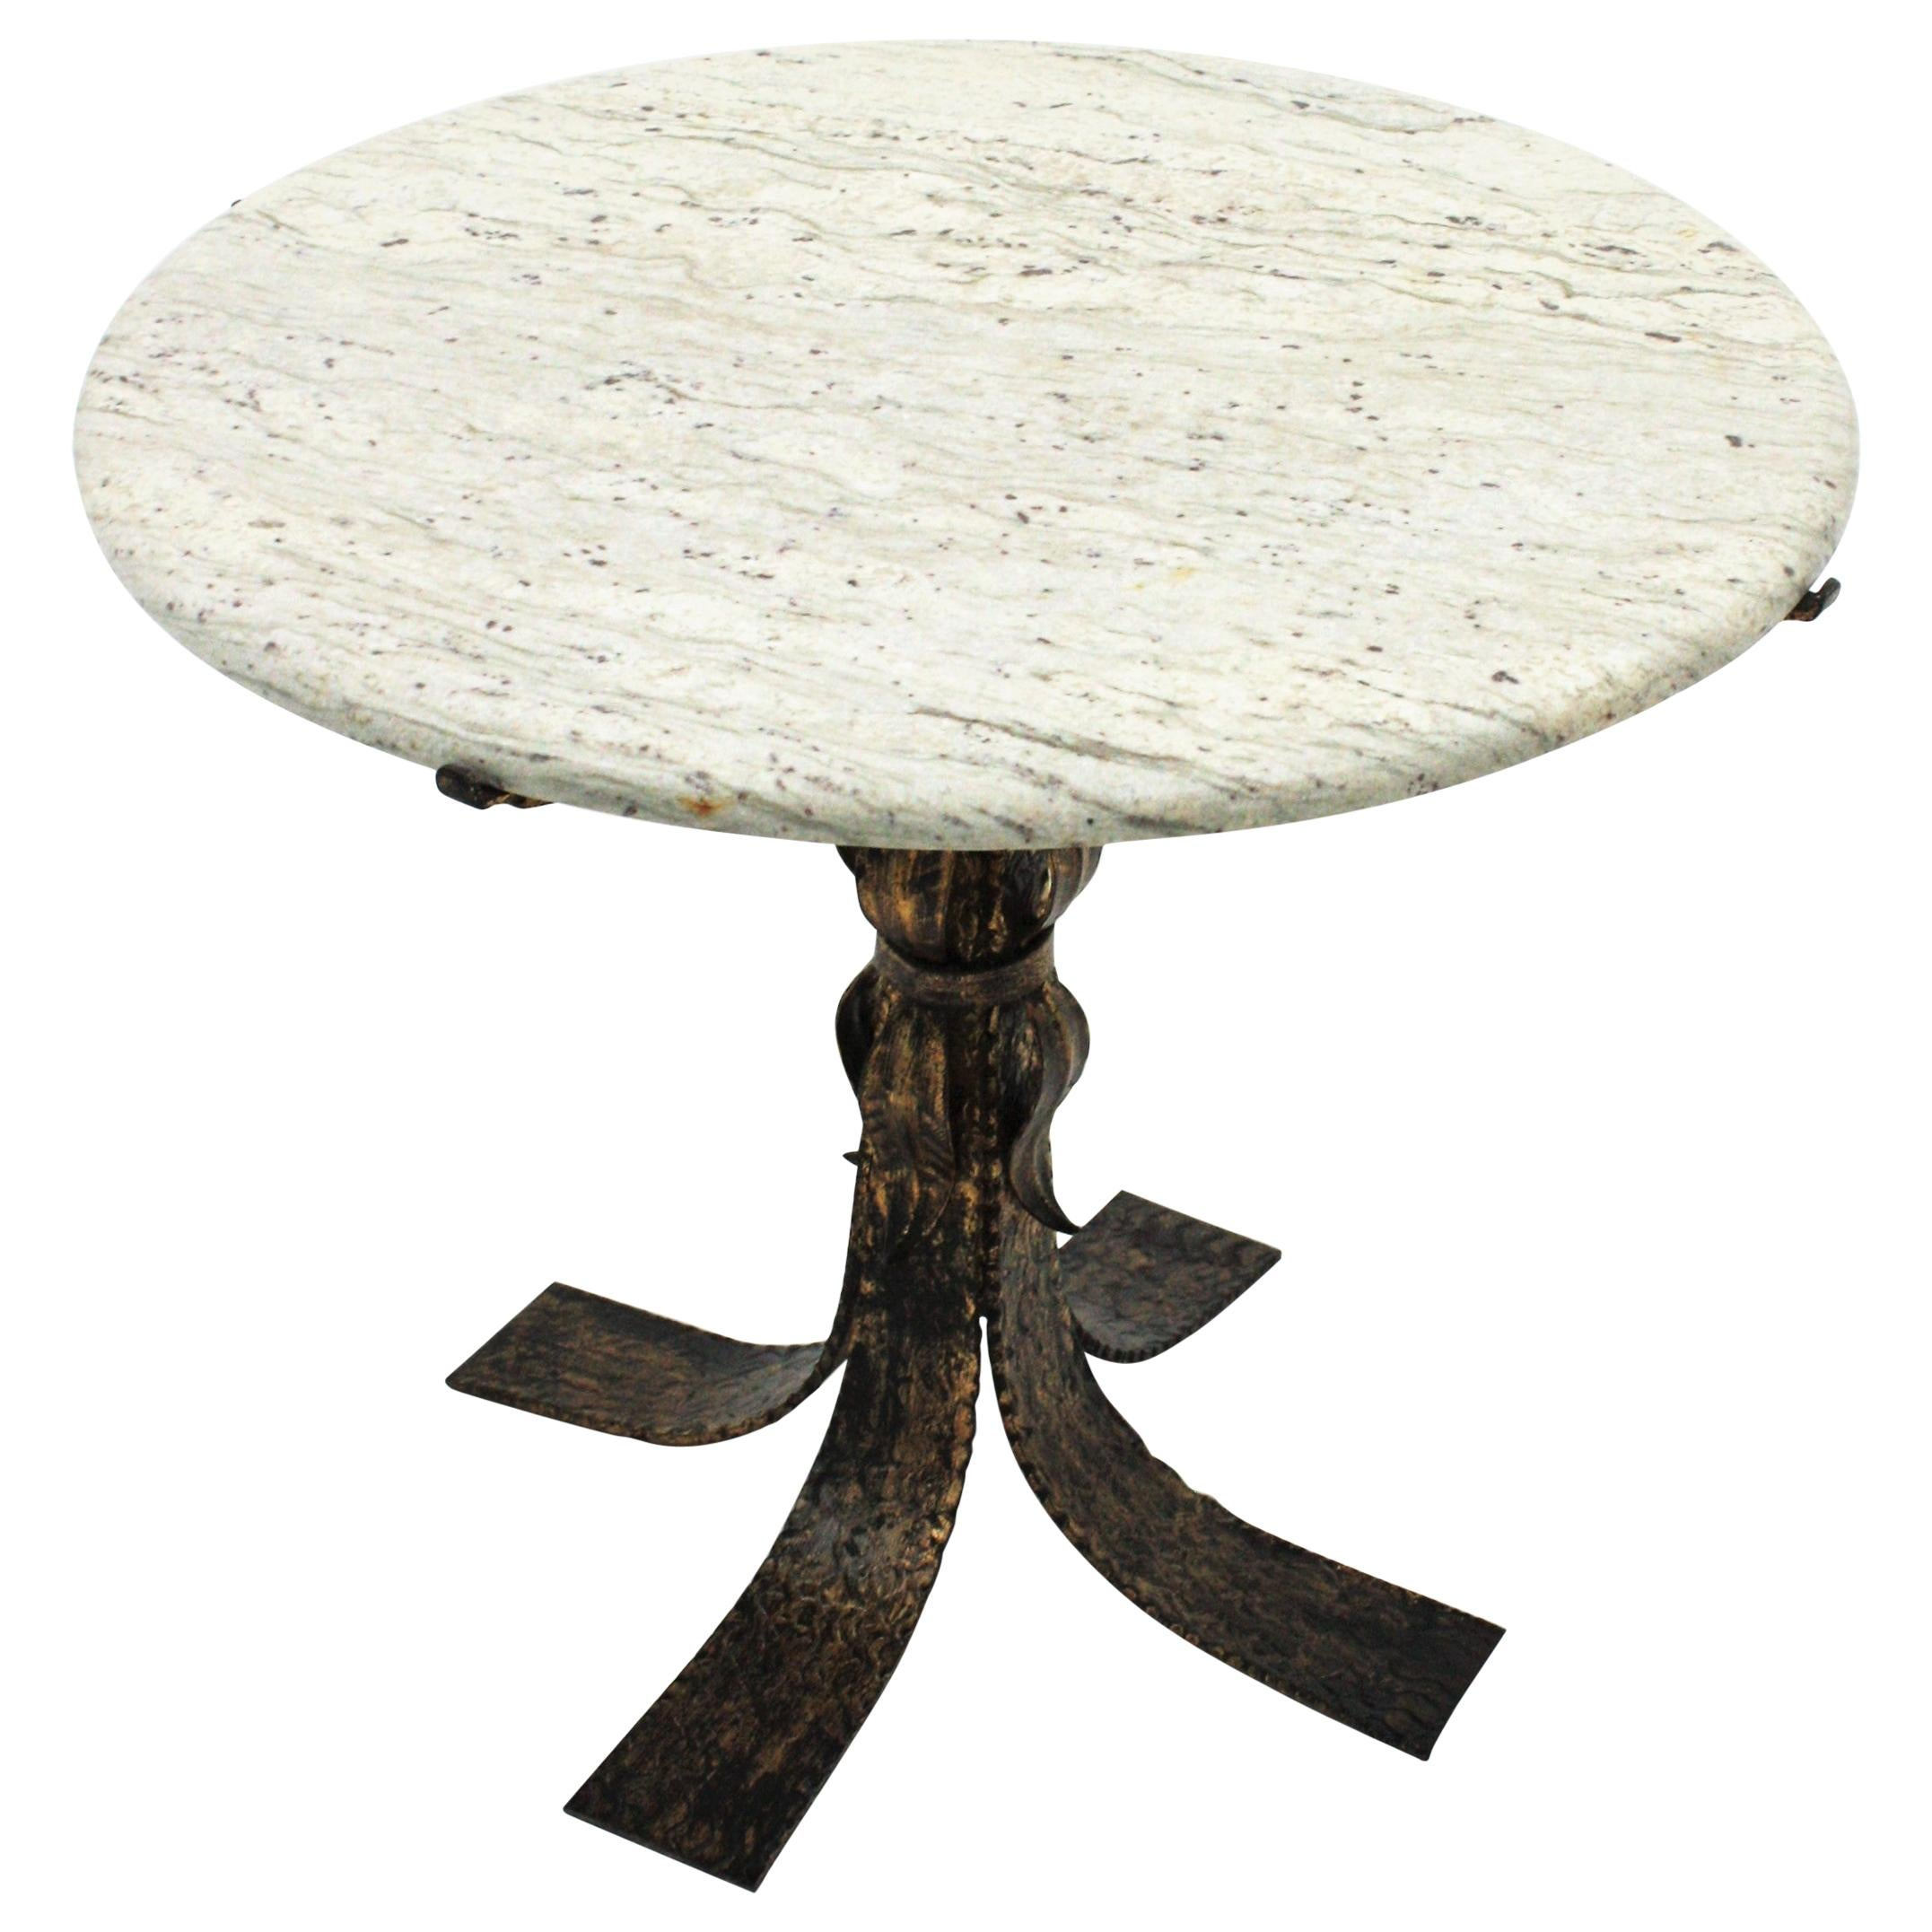 Parcel-Gilt Iron Round Coffee Table with White Marble Top